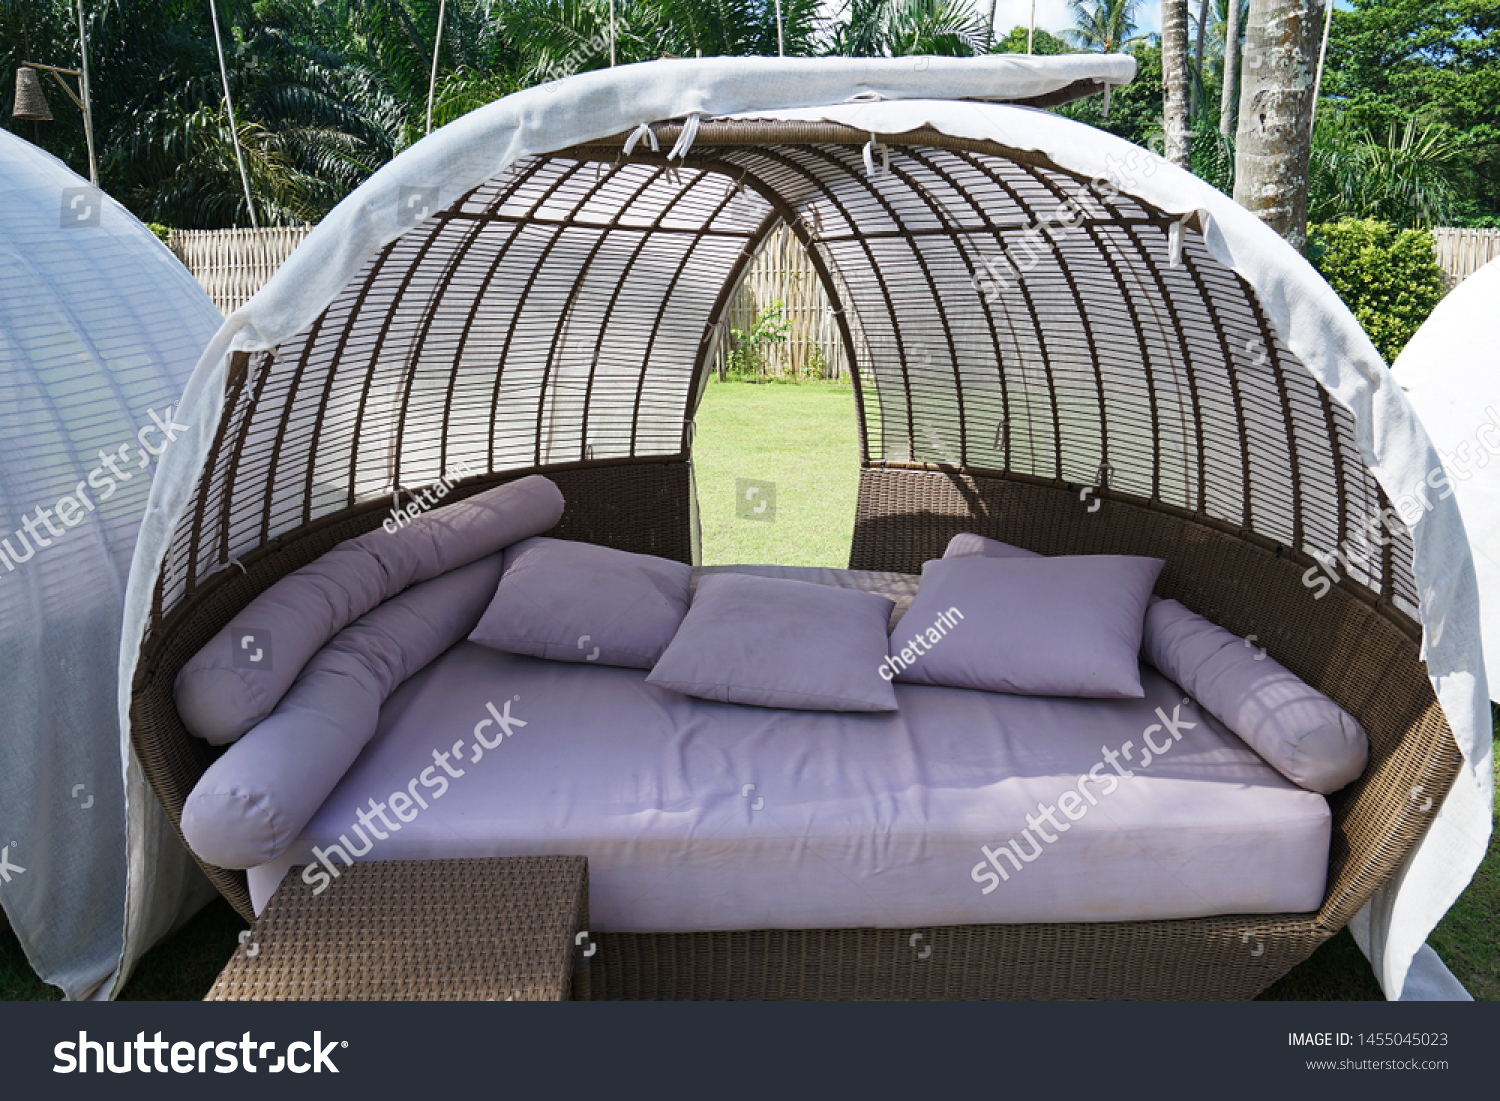 https www shutterstock com image photo outdoor patio daybeds cushion pillows green 1455045023